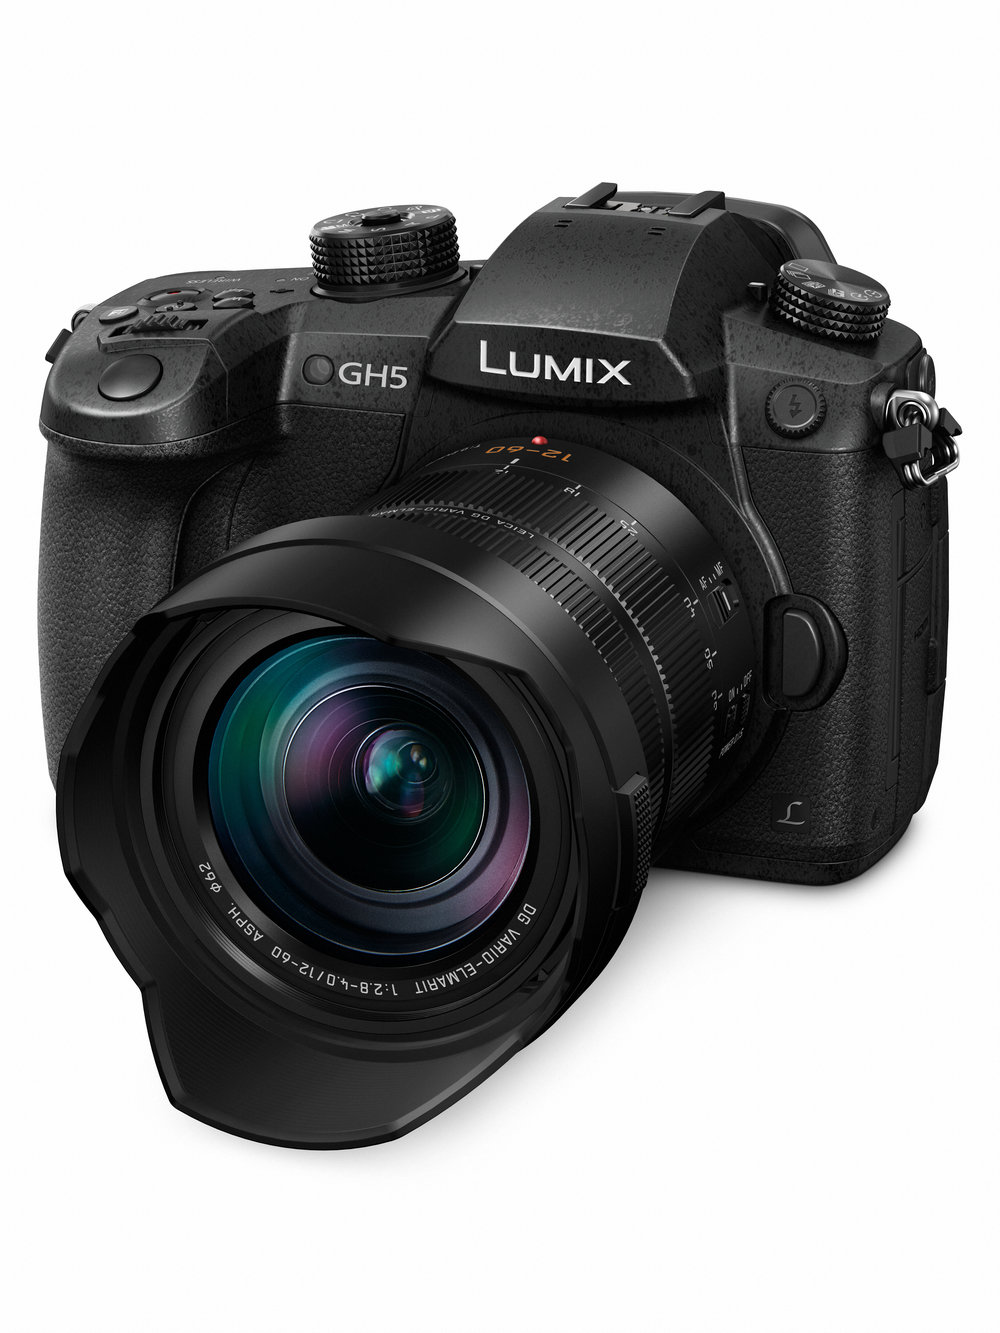 Rumours are suggesting that Panasonic could be about to launch a series of full-frame mirrorless cameras to compete with Sony, Nikon and Canon — and they could be based on the chassis of the m4/3 GH5 which is almost certainly big enough. And the Leica L-mount is tipped as the basis of the new system. But, then again, these are just rumours. It's no coincidence, either, that the lens on this GH5 is the Leica-branded 12-60mm DG Vario-Elmarit. It could constitute a precedent.